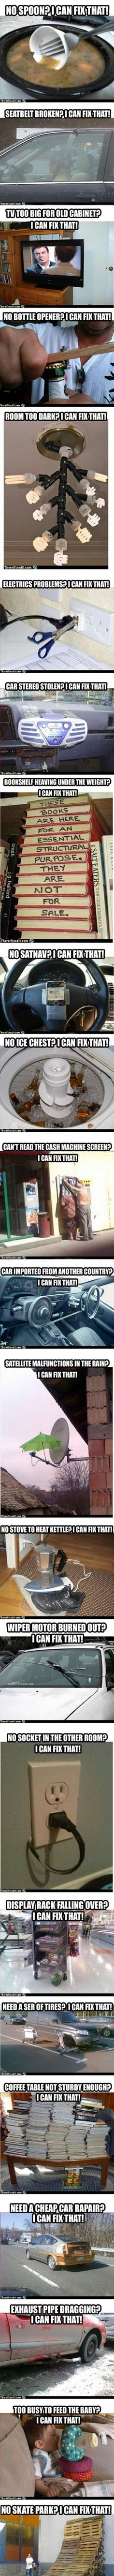 I Can Fix That (compilation)